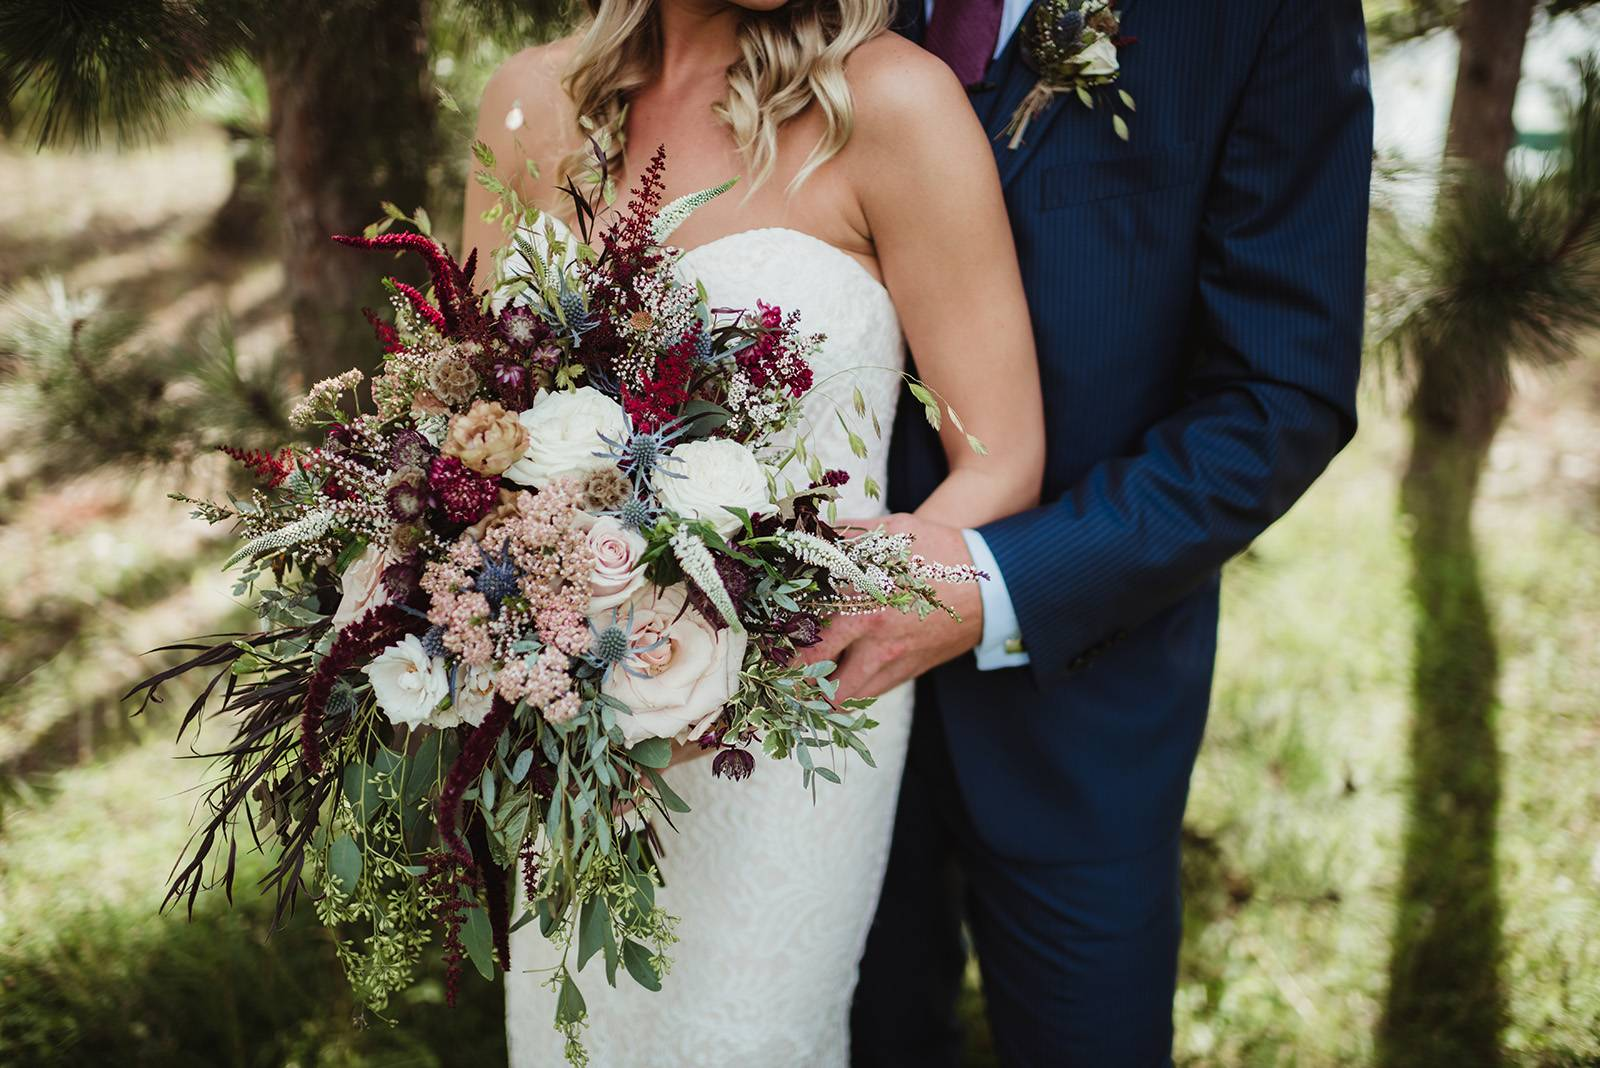 NORTHWOODS ROMANCE IN DUSTY ROSE AND MULBERRY HUES